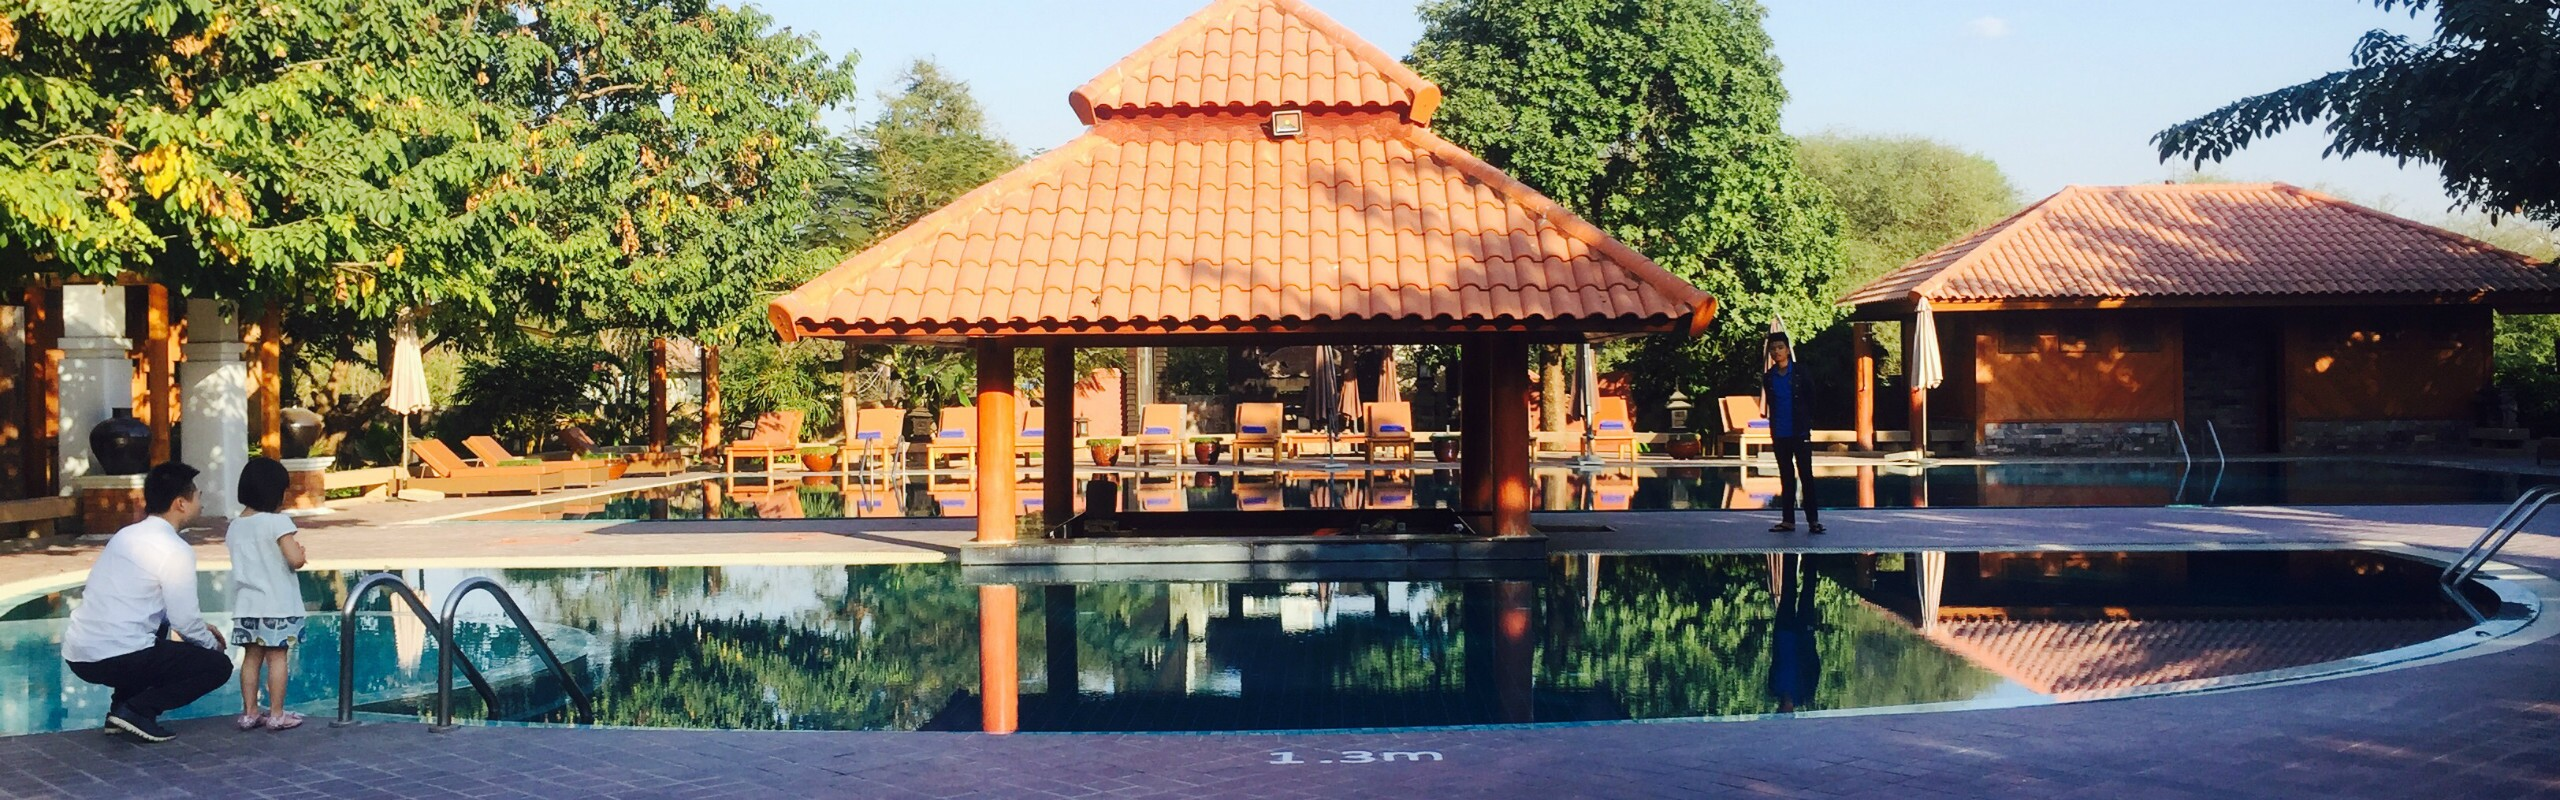 Top Hotels in Mandalay - Best Resorts to Stay